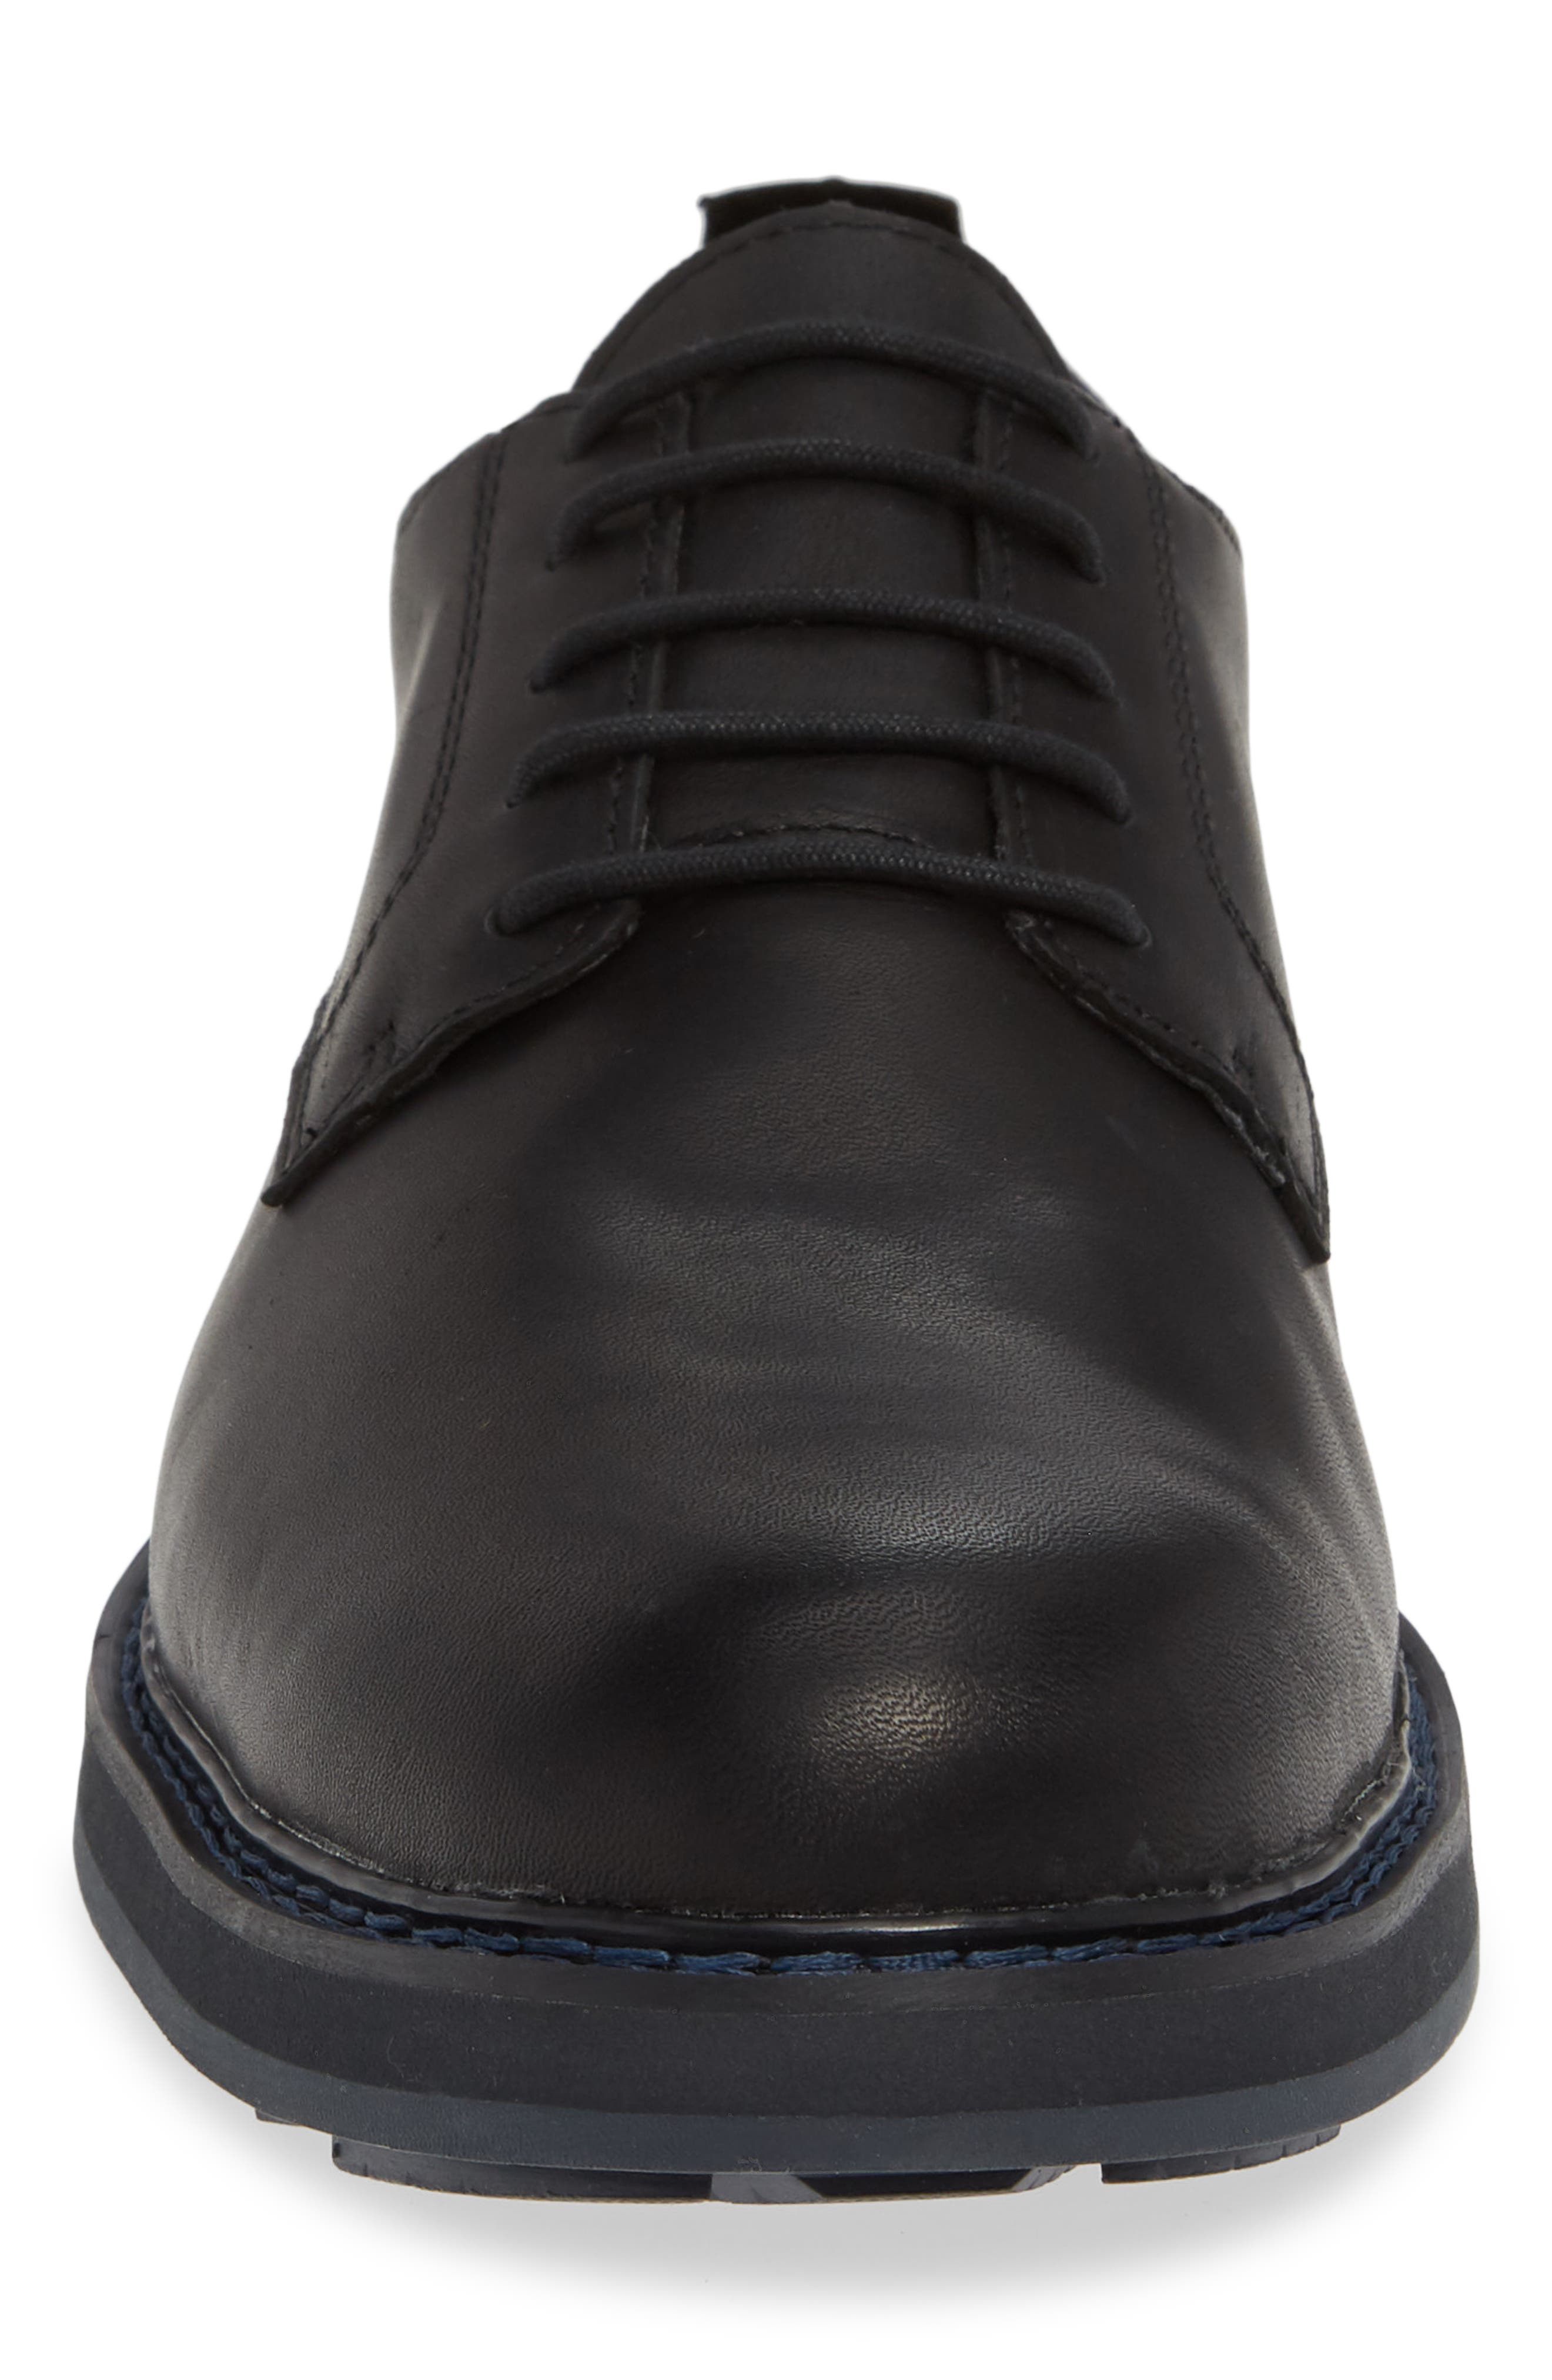 Squall Canyon Waterproof Plain Toe Derby,                             Alternate thumbnail 4, color,                             BLACK LEATHER